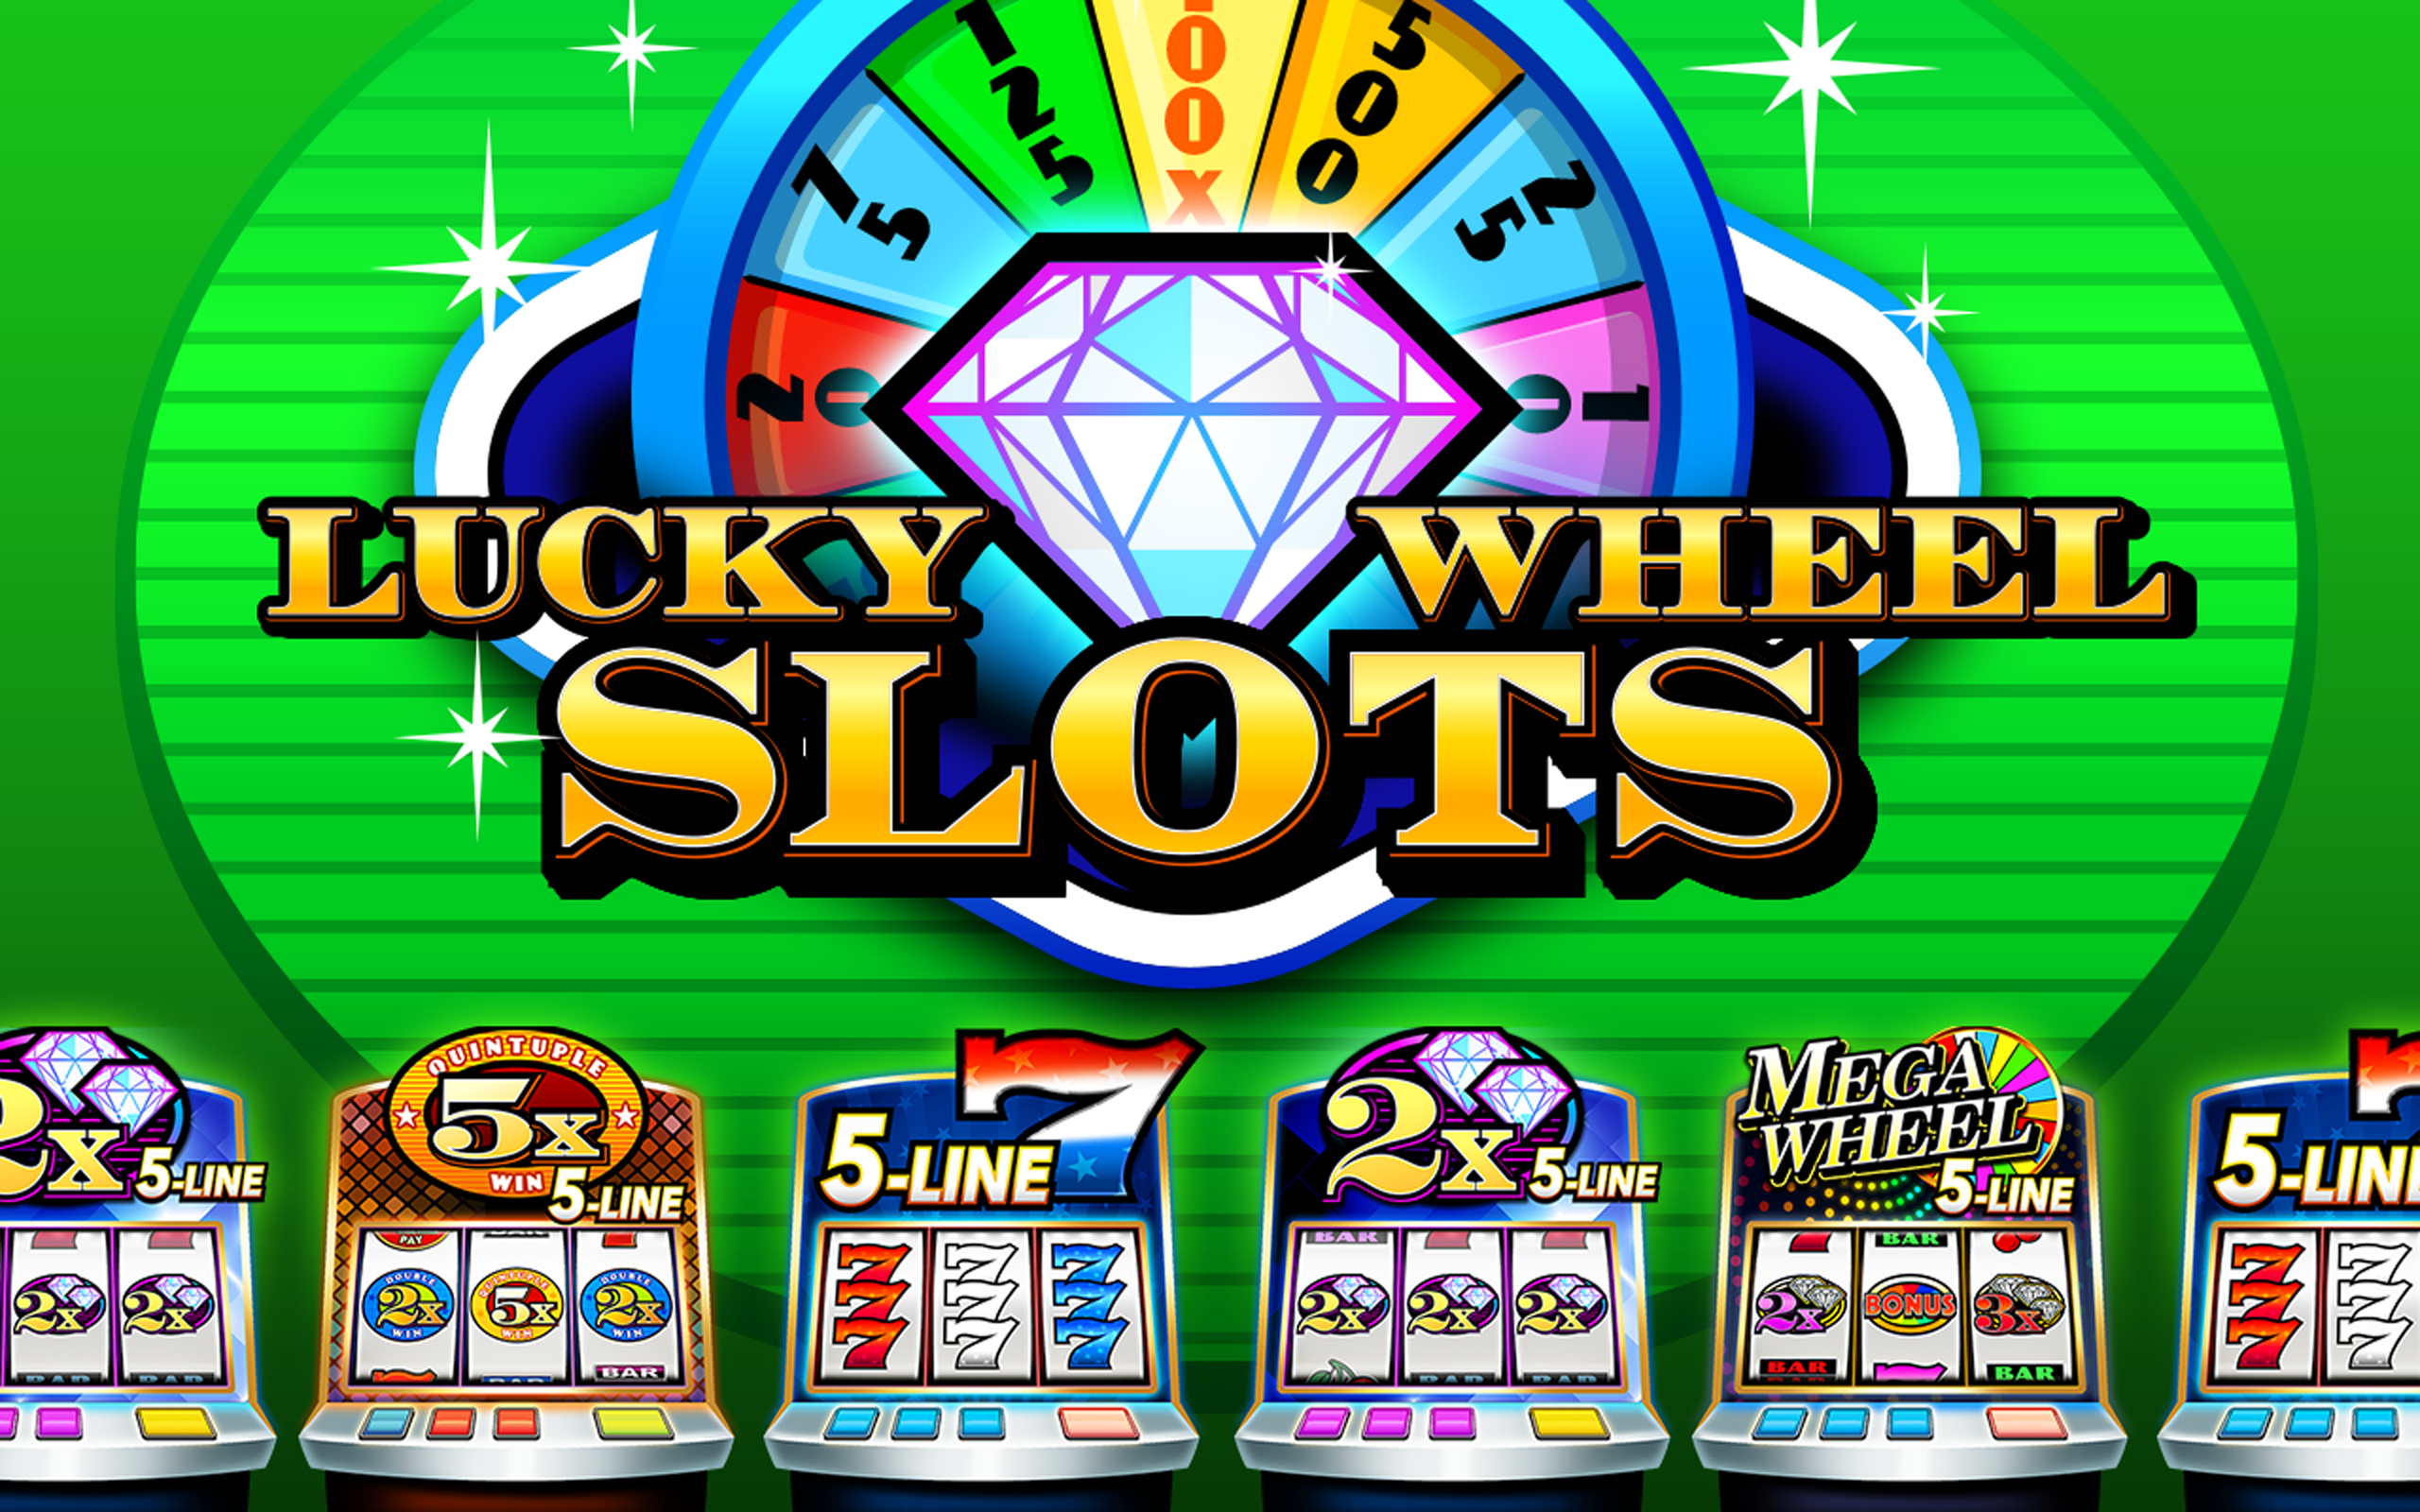 Las Vegas Slot Machines Free Games